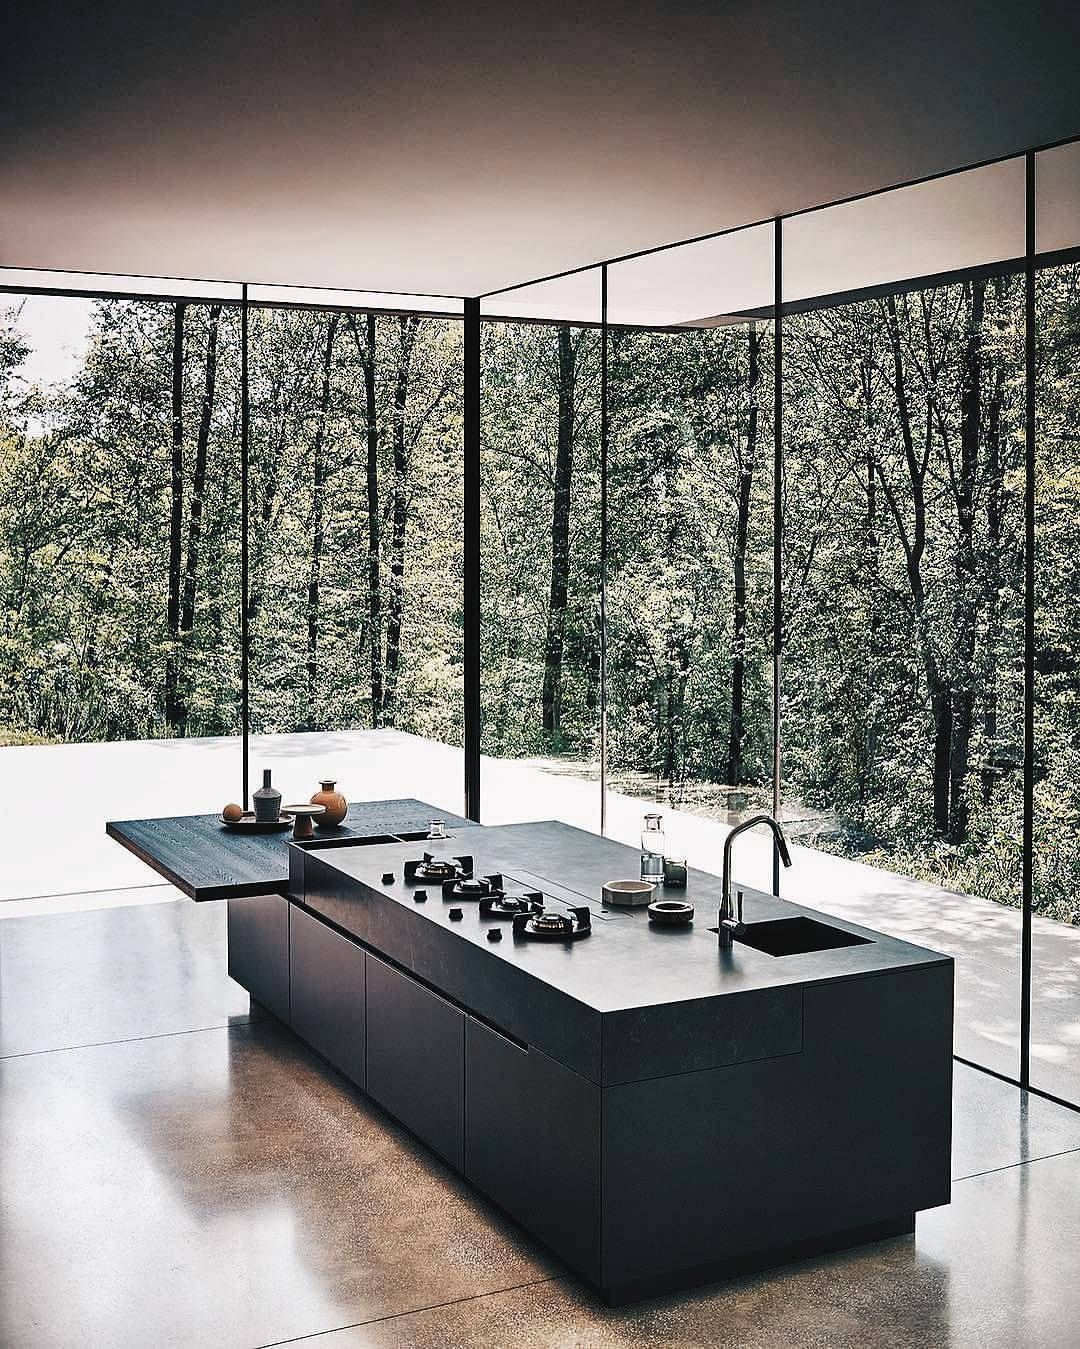 Minimal black kitchen island bench surrounded by tall windows with natural light Modern home House design #islanddecorating